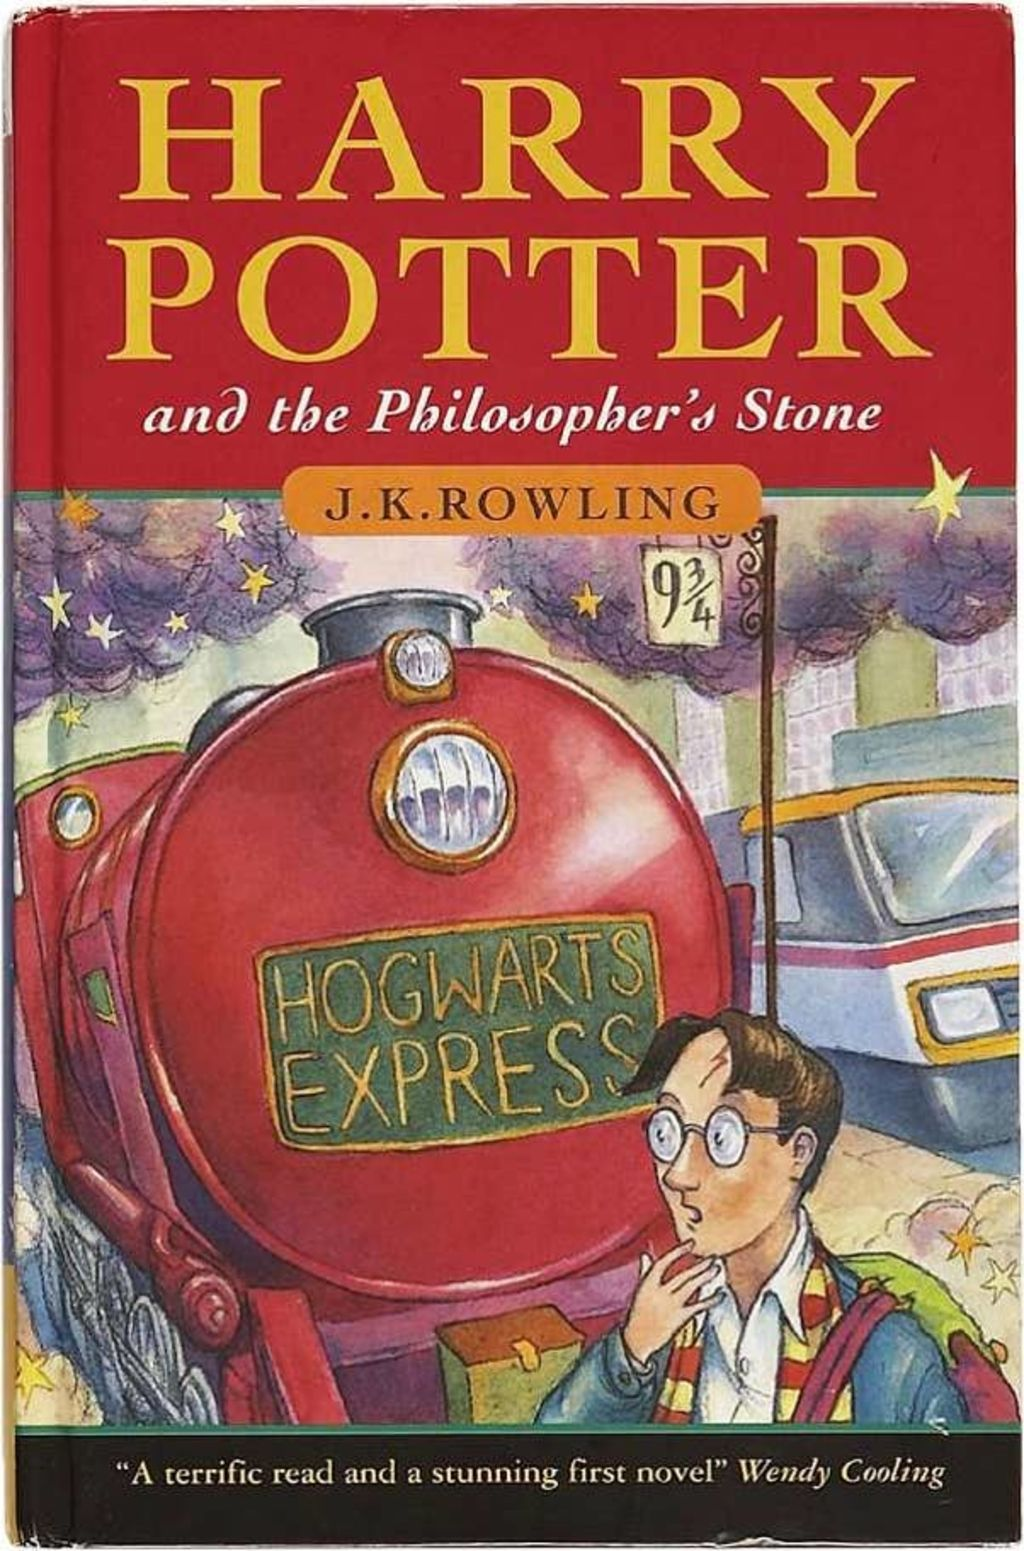 Collector's items, such as early editions of Harry Potter, are highly sought after online.